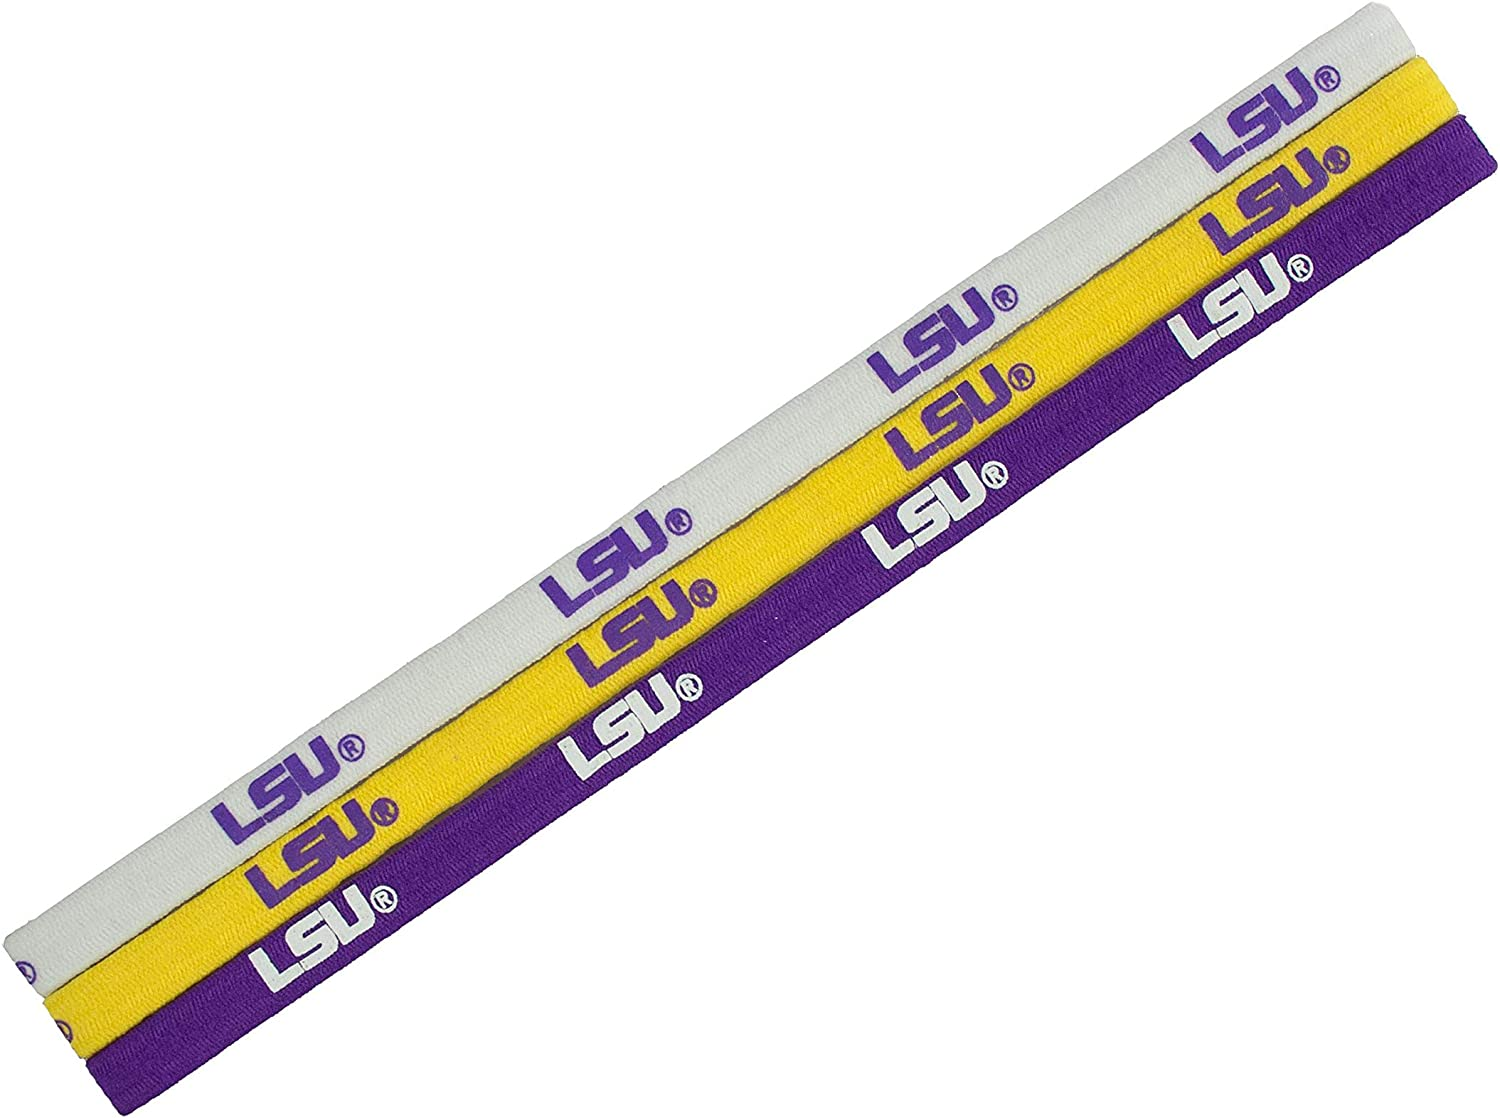 NCAA Elastic Headband